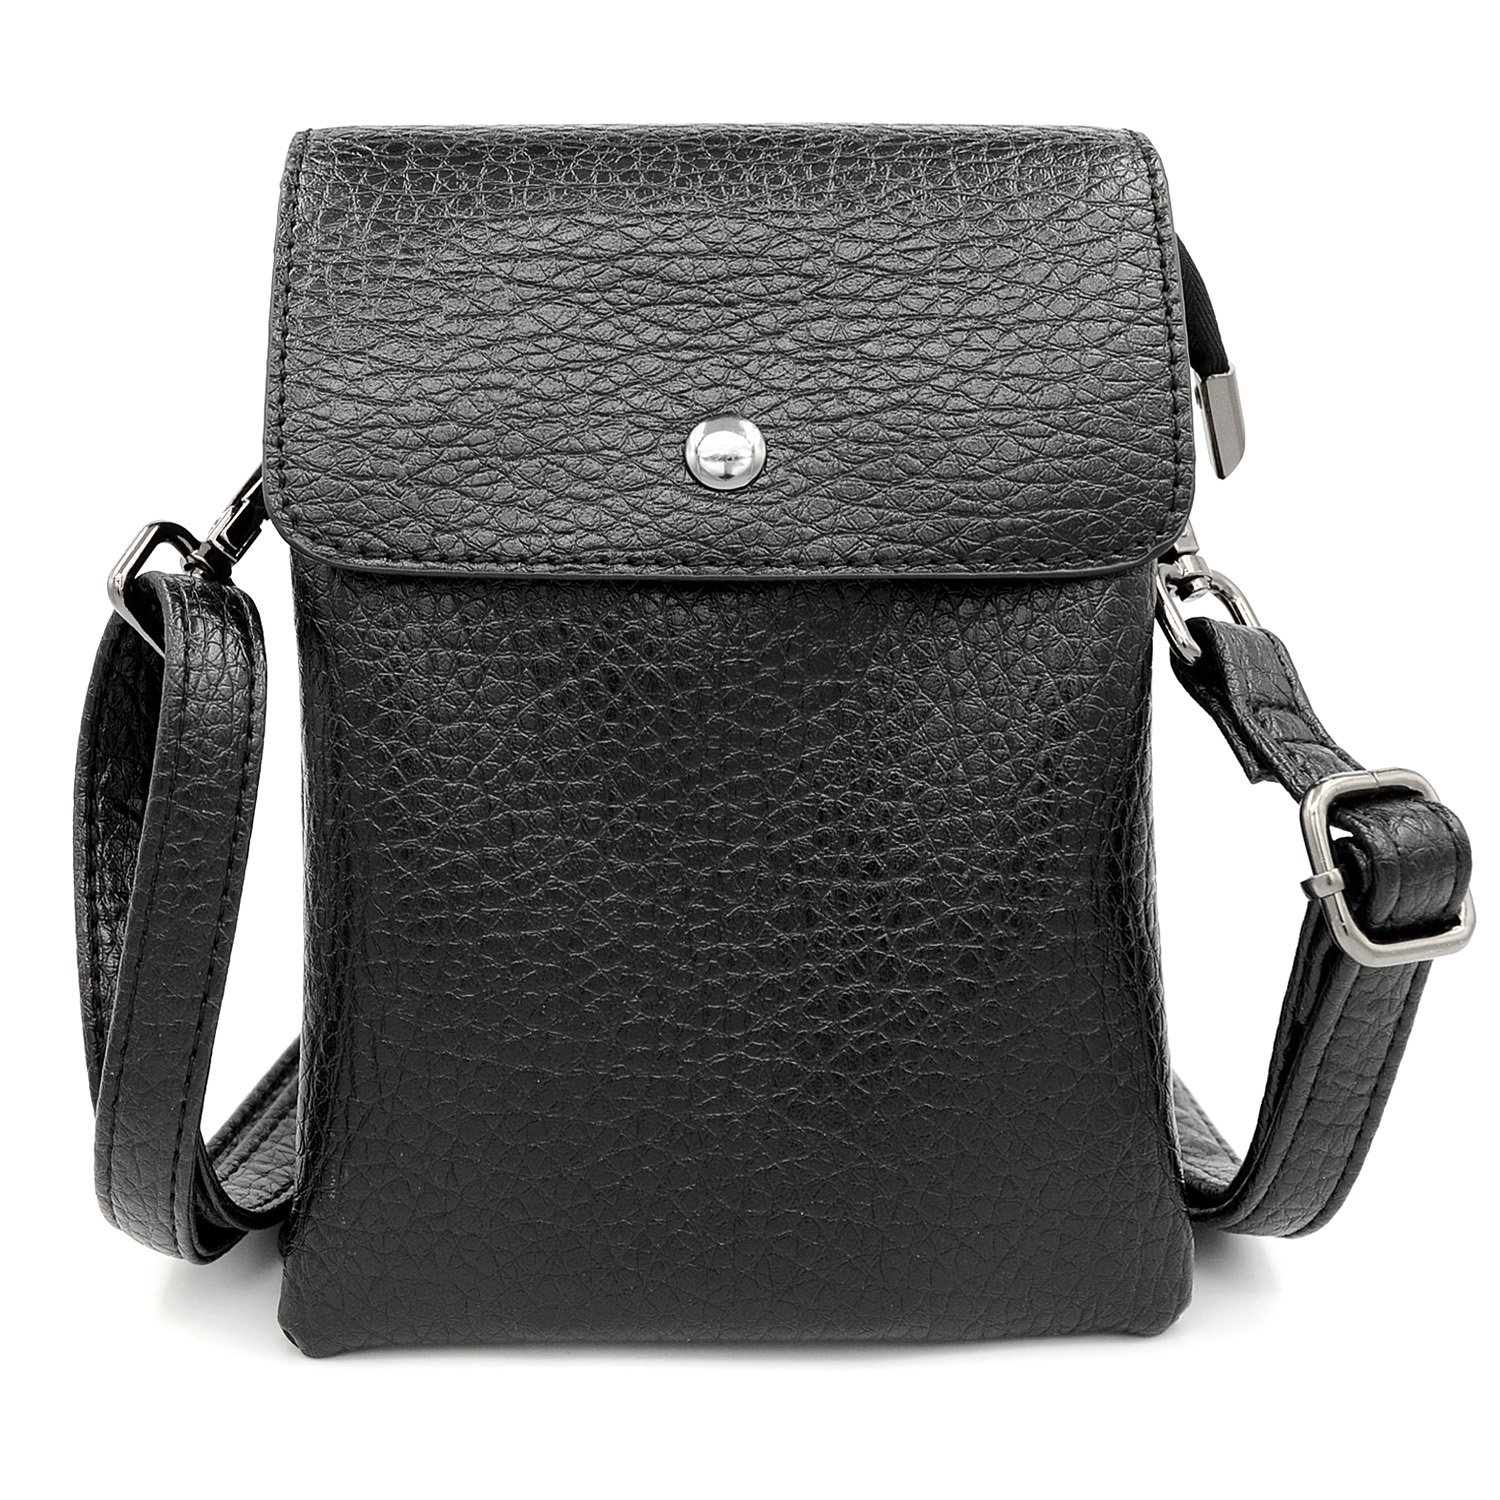 Womens PU Leather Shoulder Bags Small Crossbody Purses Cell Phone Pouch